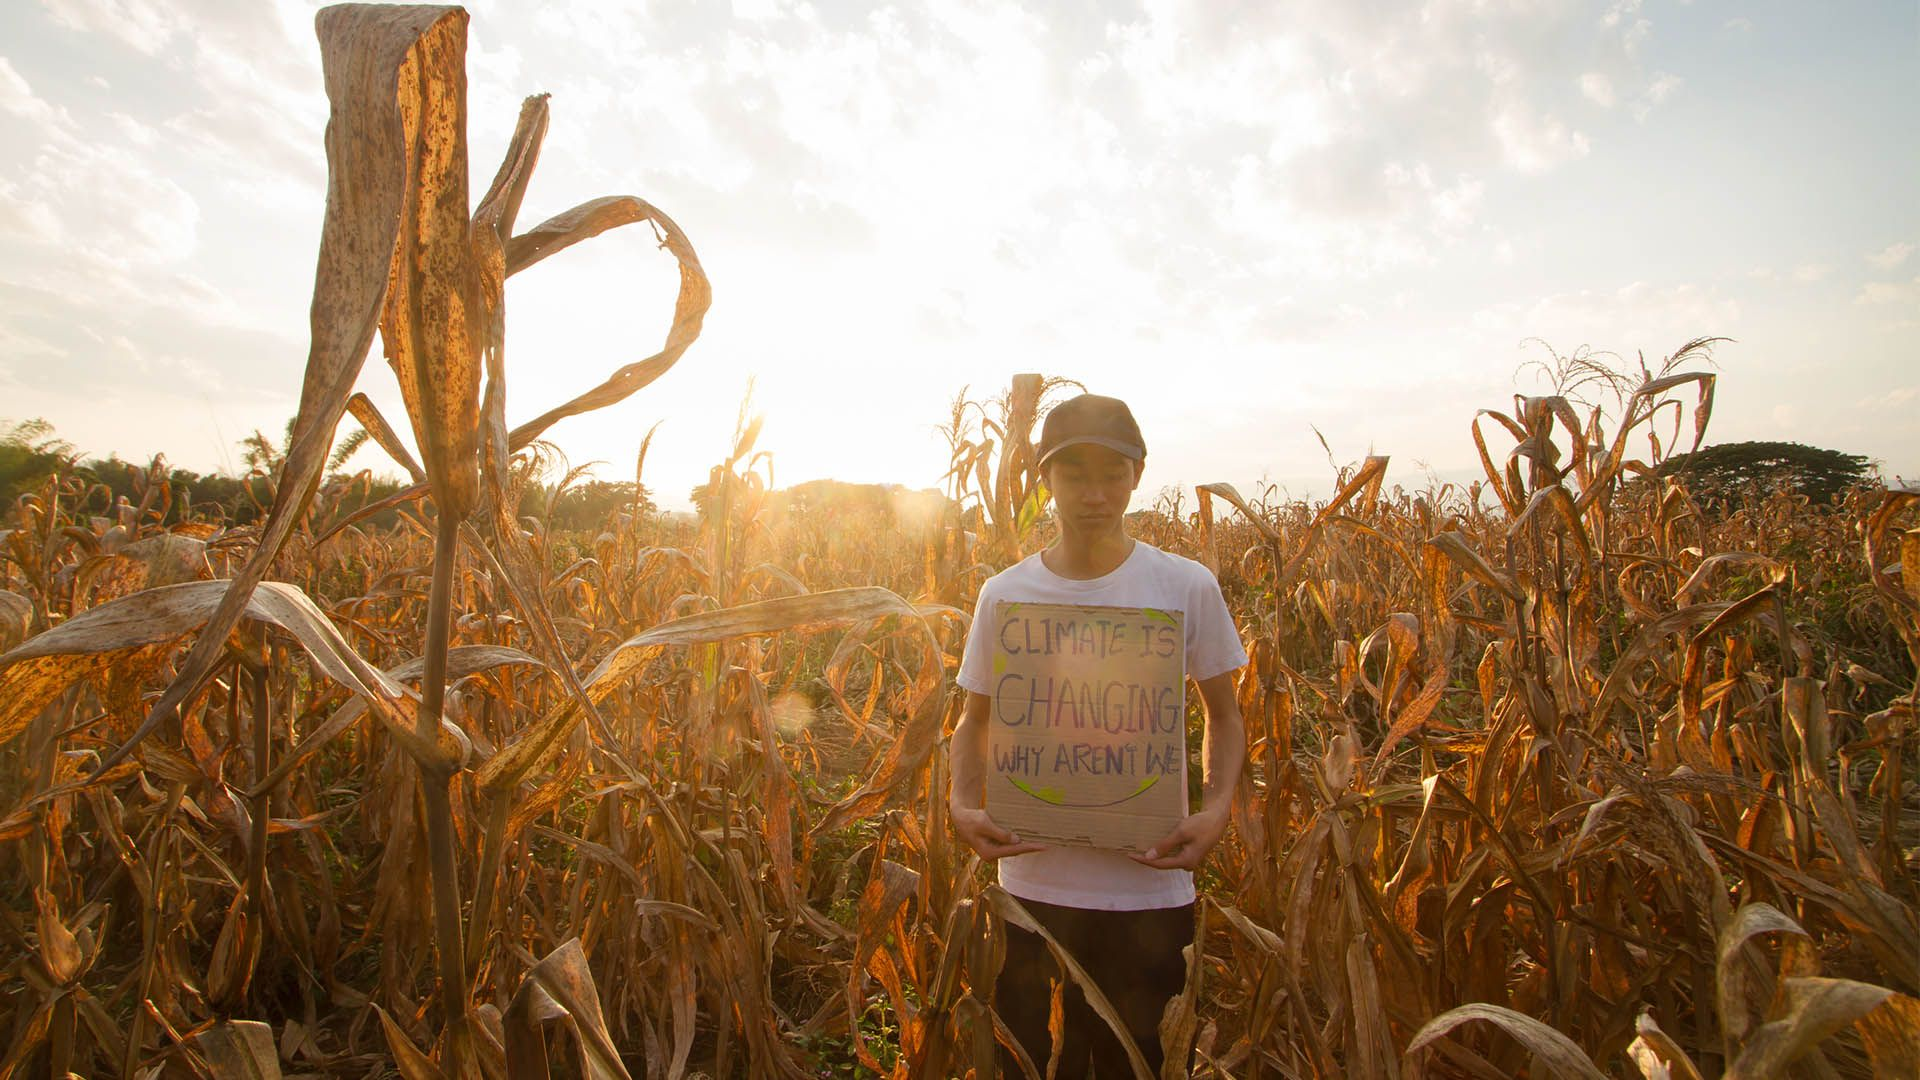 Boy holding a sign in a field of crops